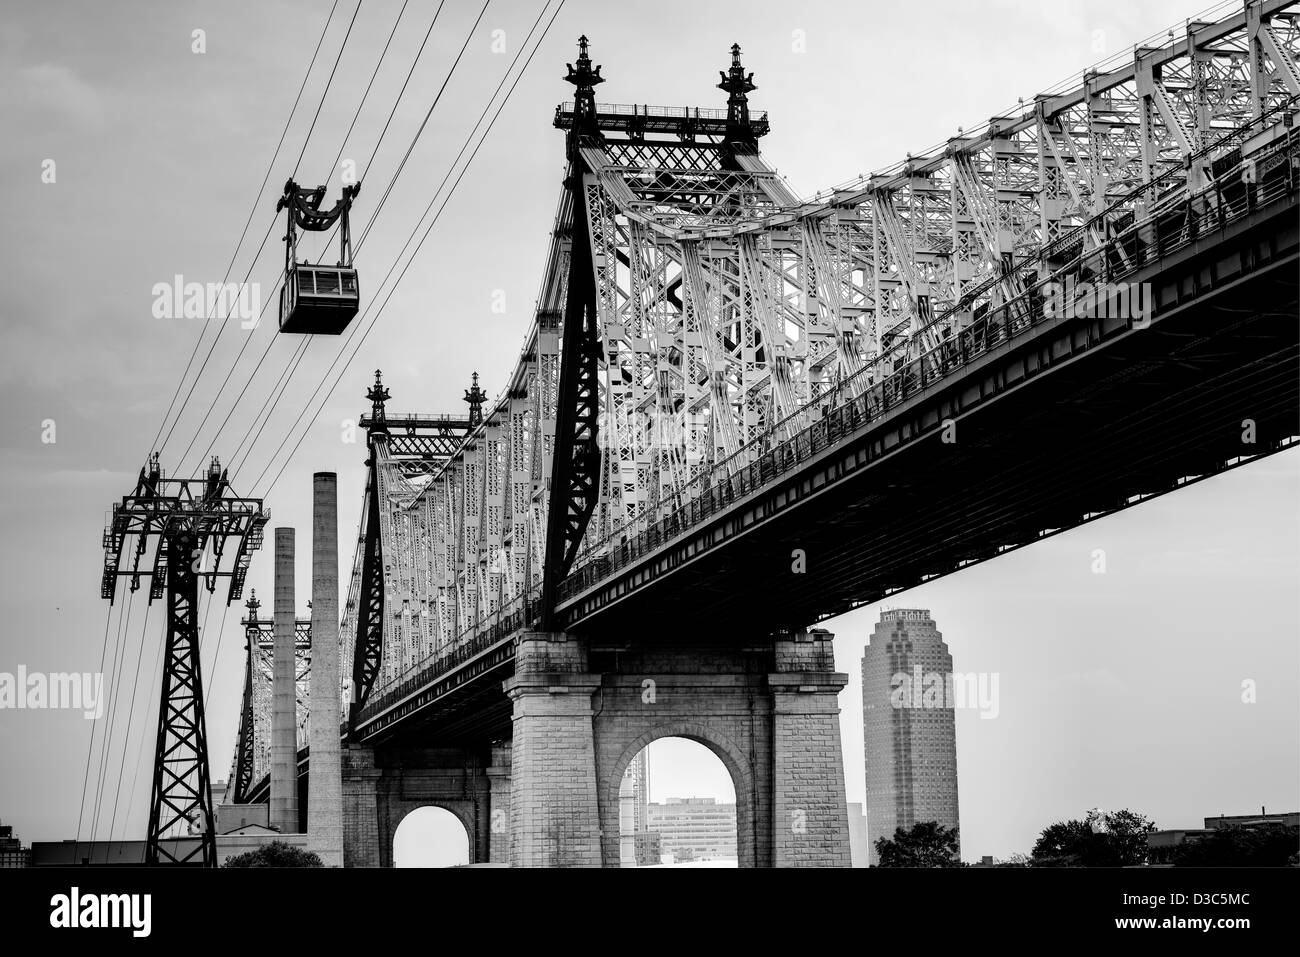 Cable Automotive Oklahoma City : The queensboro bridge across east river new york city